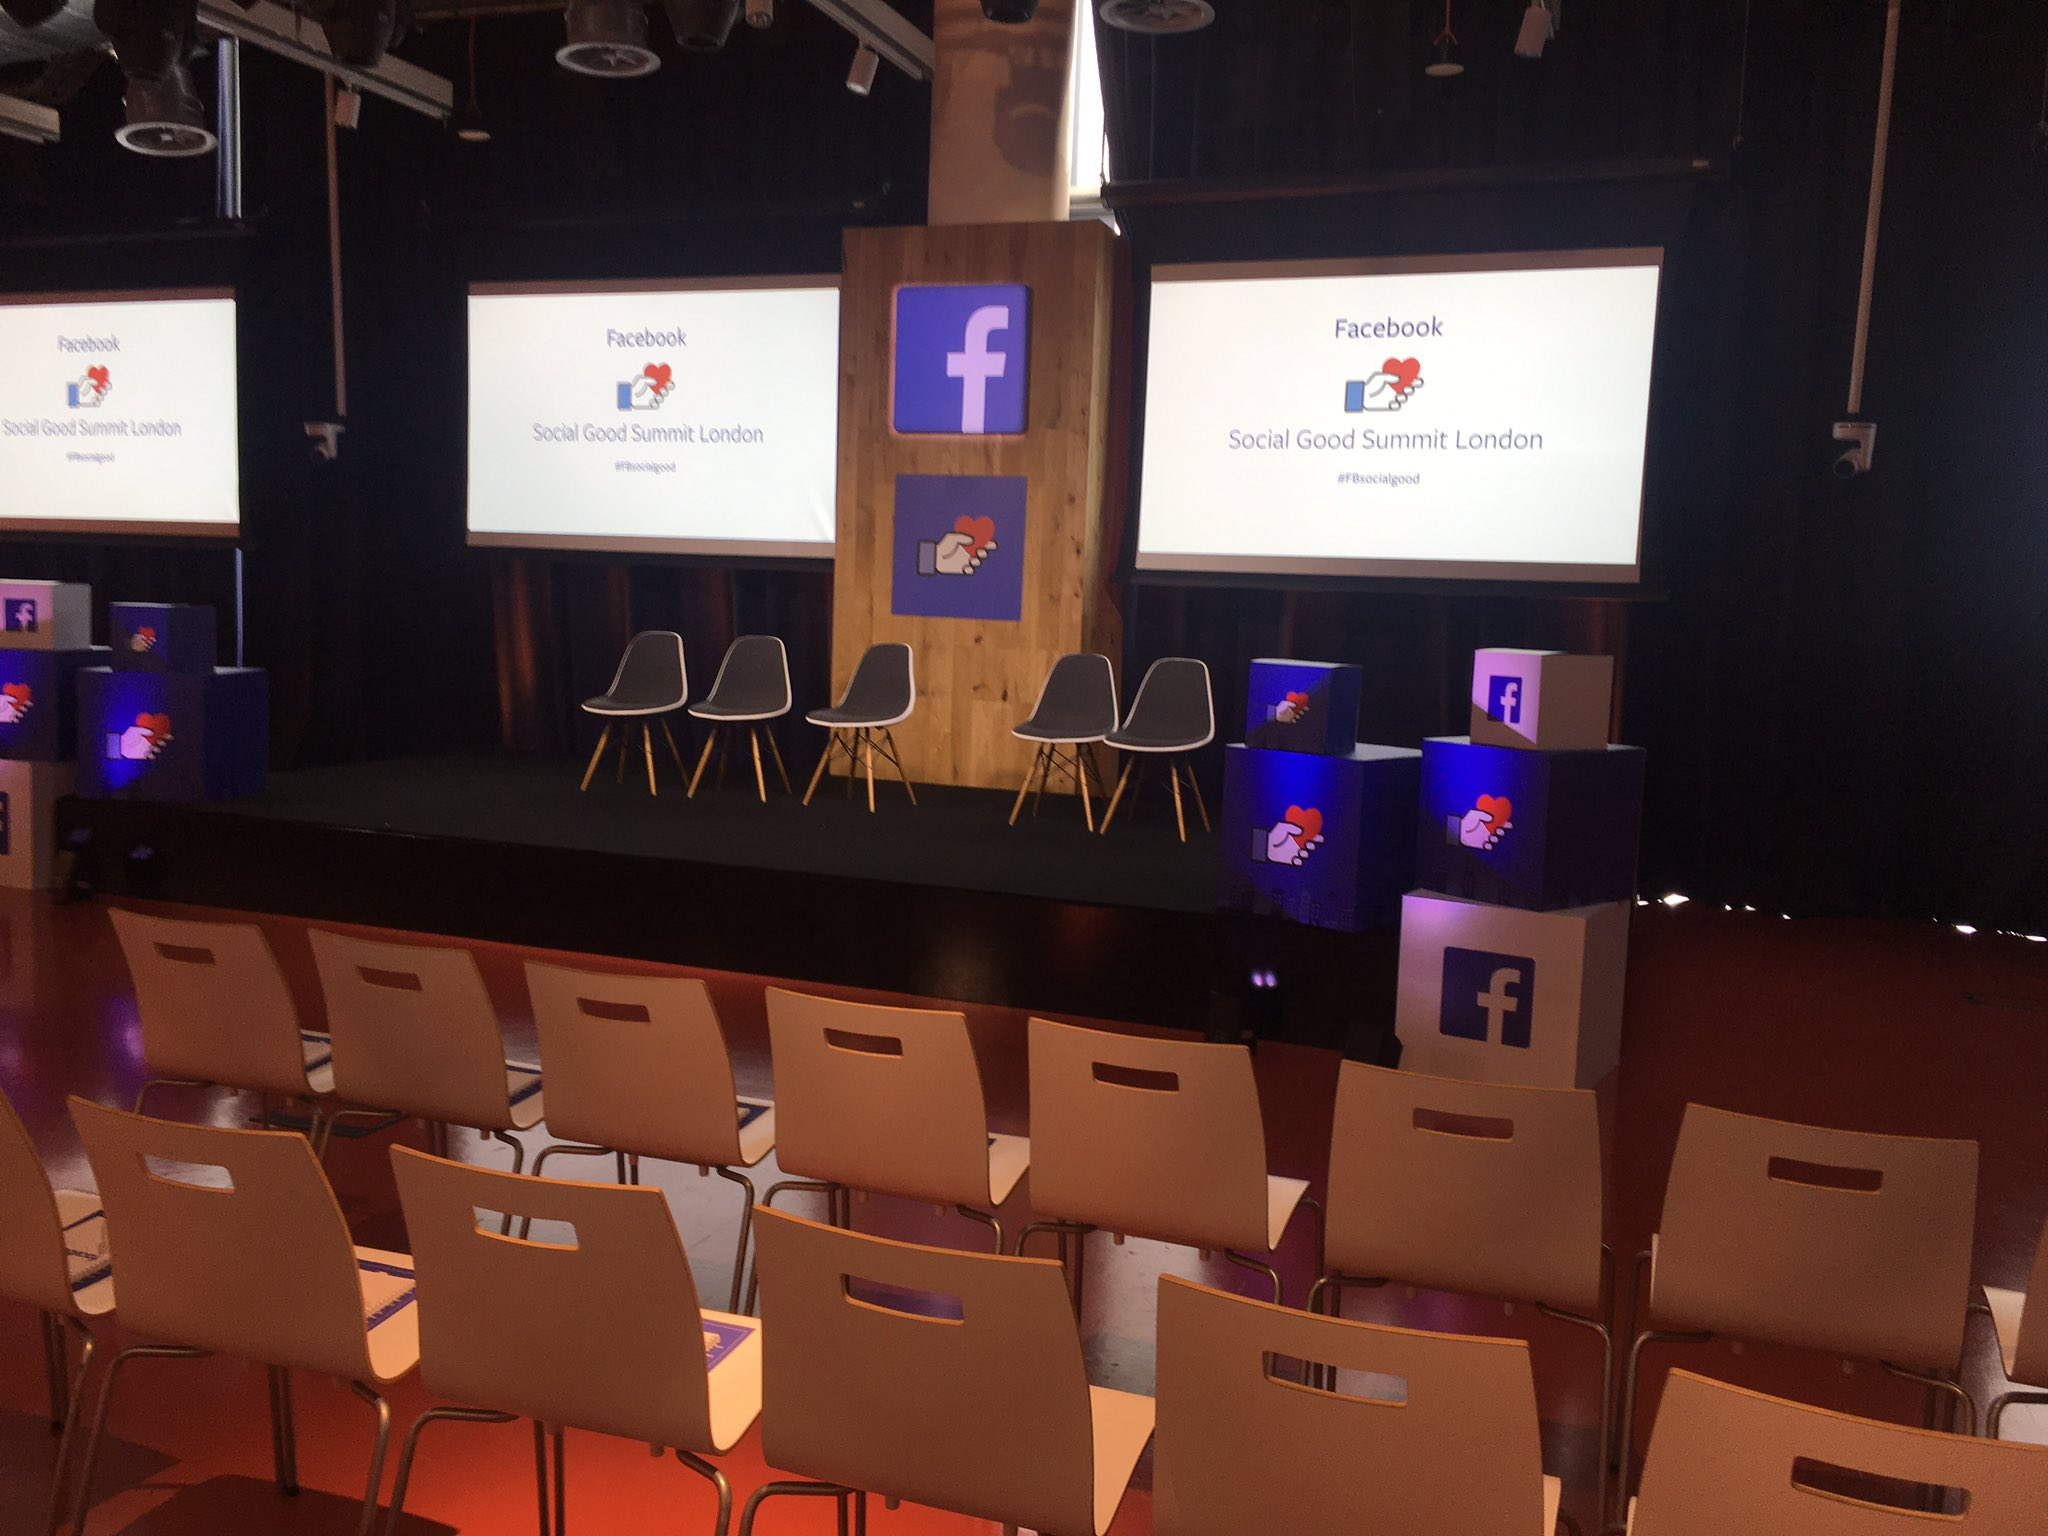 Nervously awaiting my turn to sit in one of those chairs on a @WorkplacebyFB panel at #FBsocialgood today. https://t.co/3zyu62AgtW